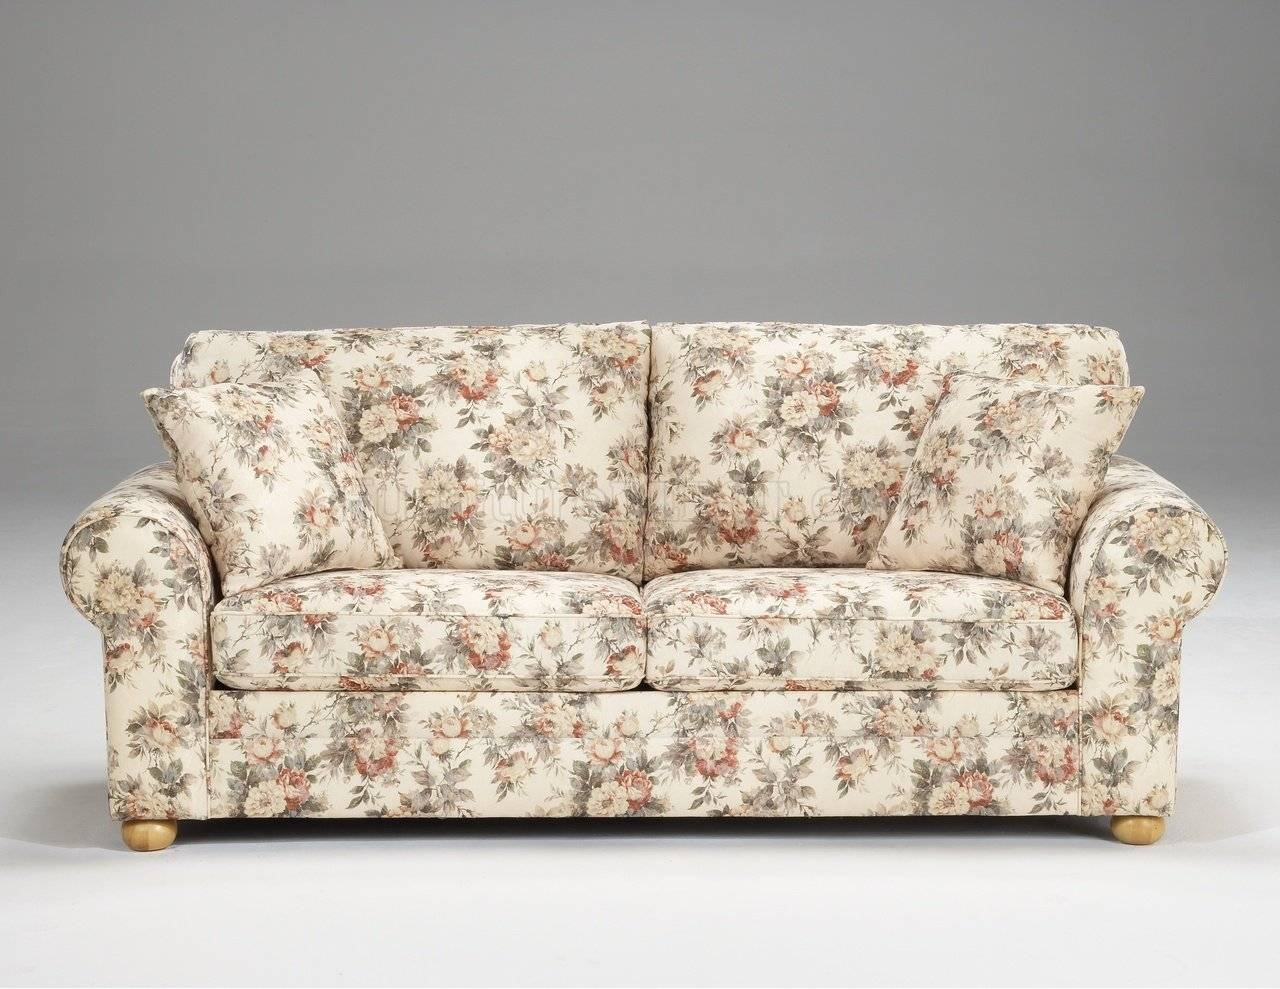 Furniture Remarkable Floral Pattern Fabric Traditional Sofa Within with Floral Sofas (Image 8 of 15)